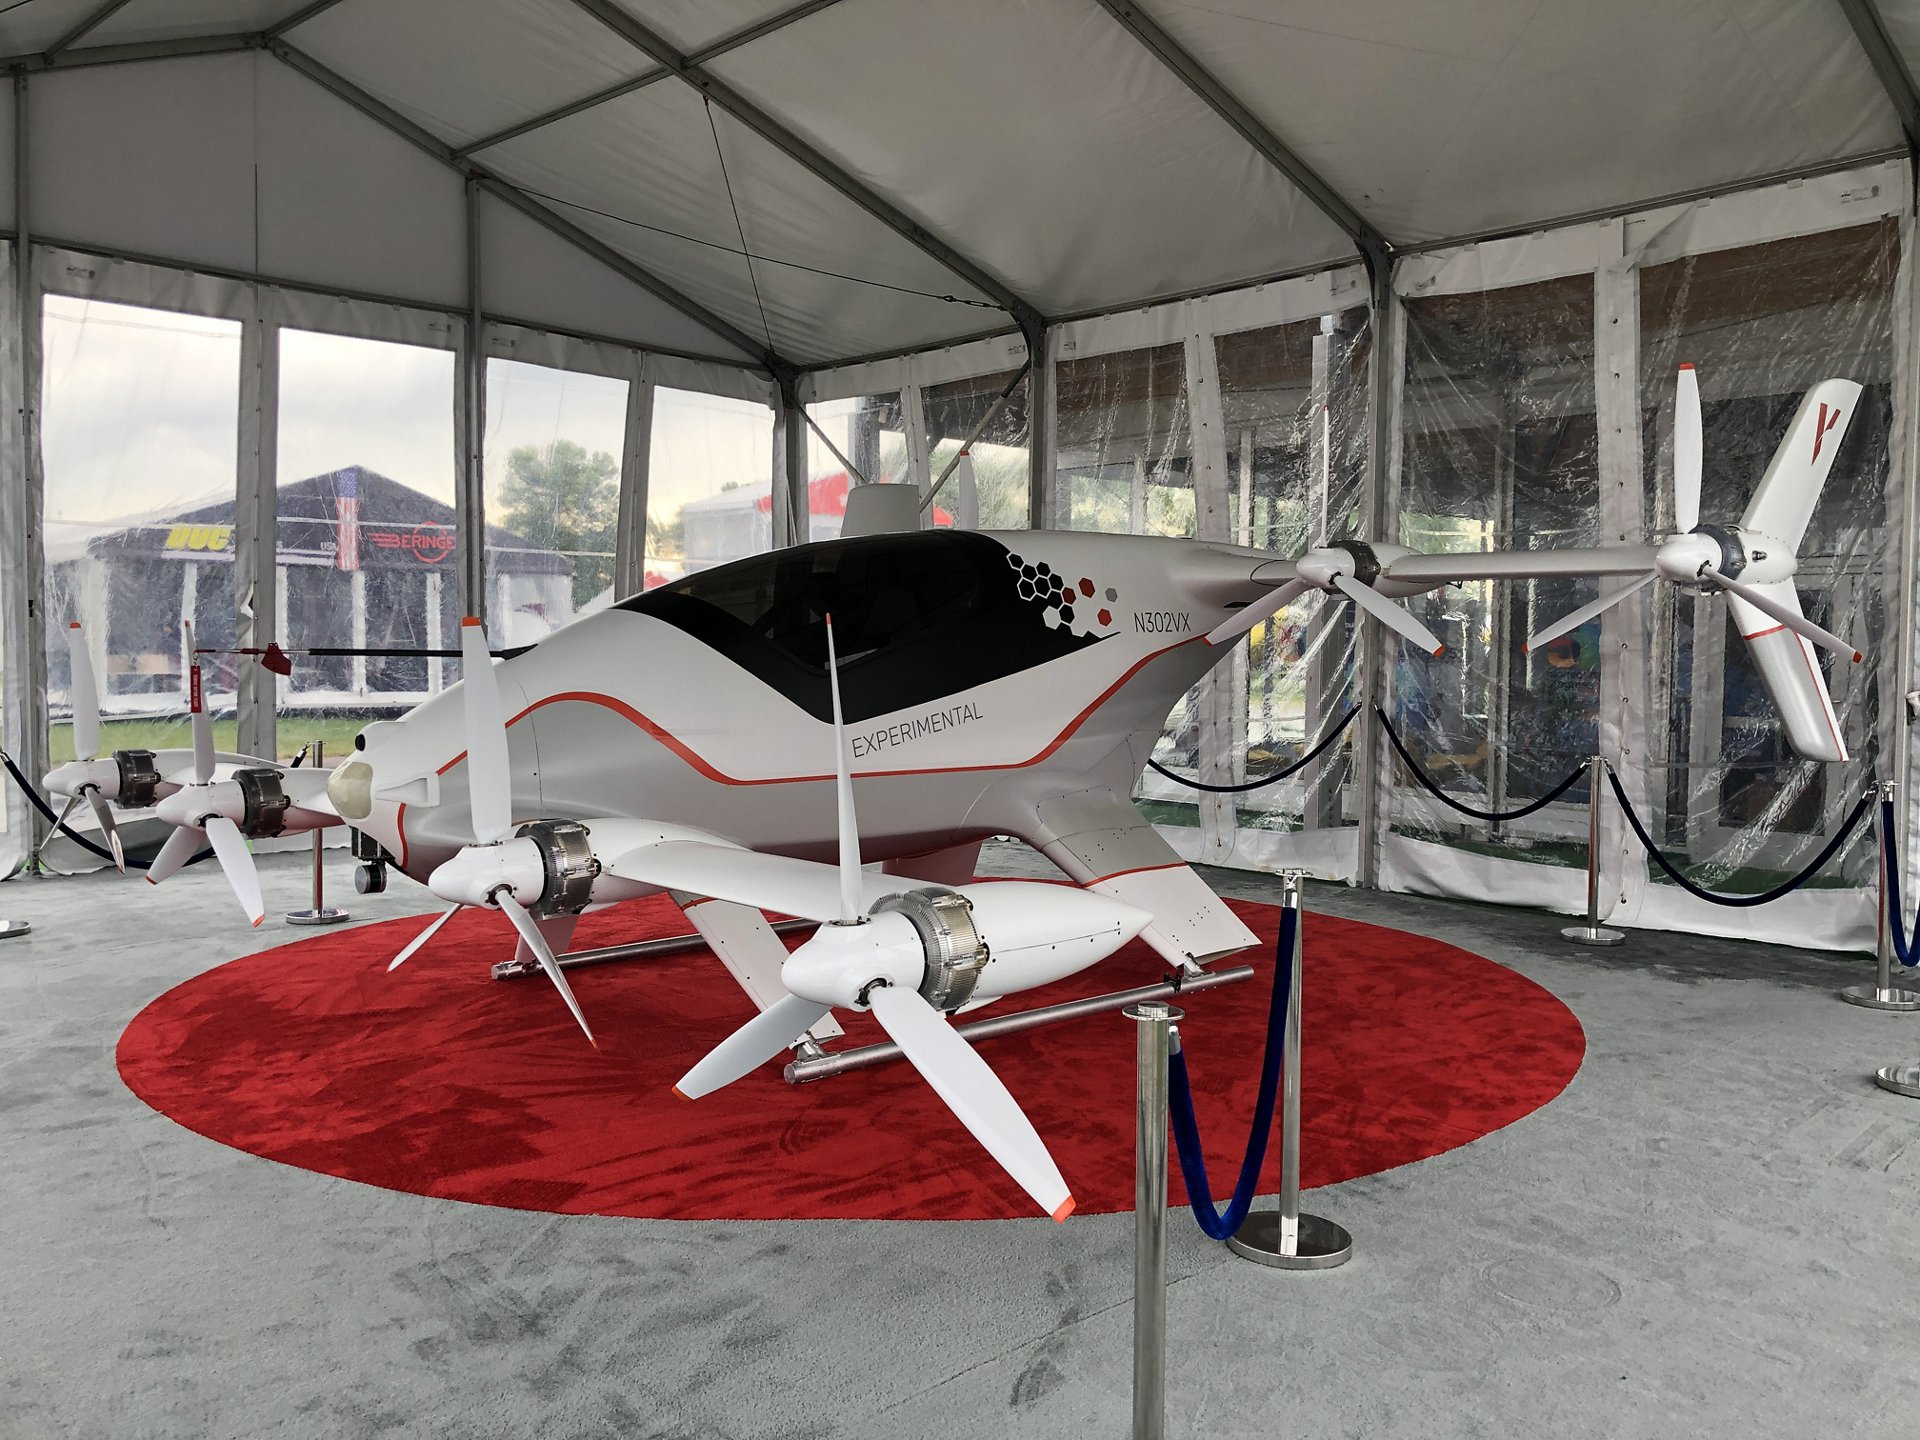 Vahana Alpha Two eVTOL demonstrator